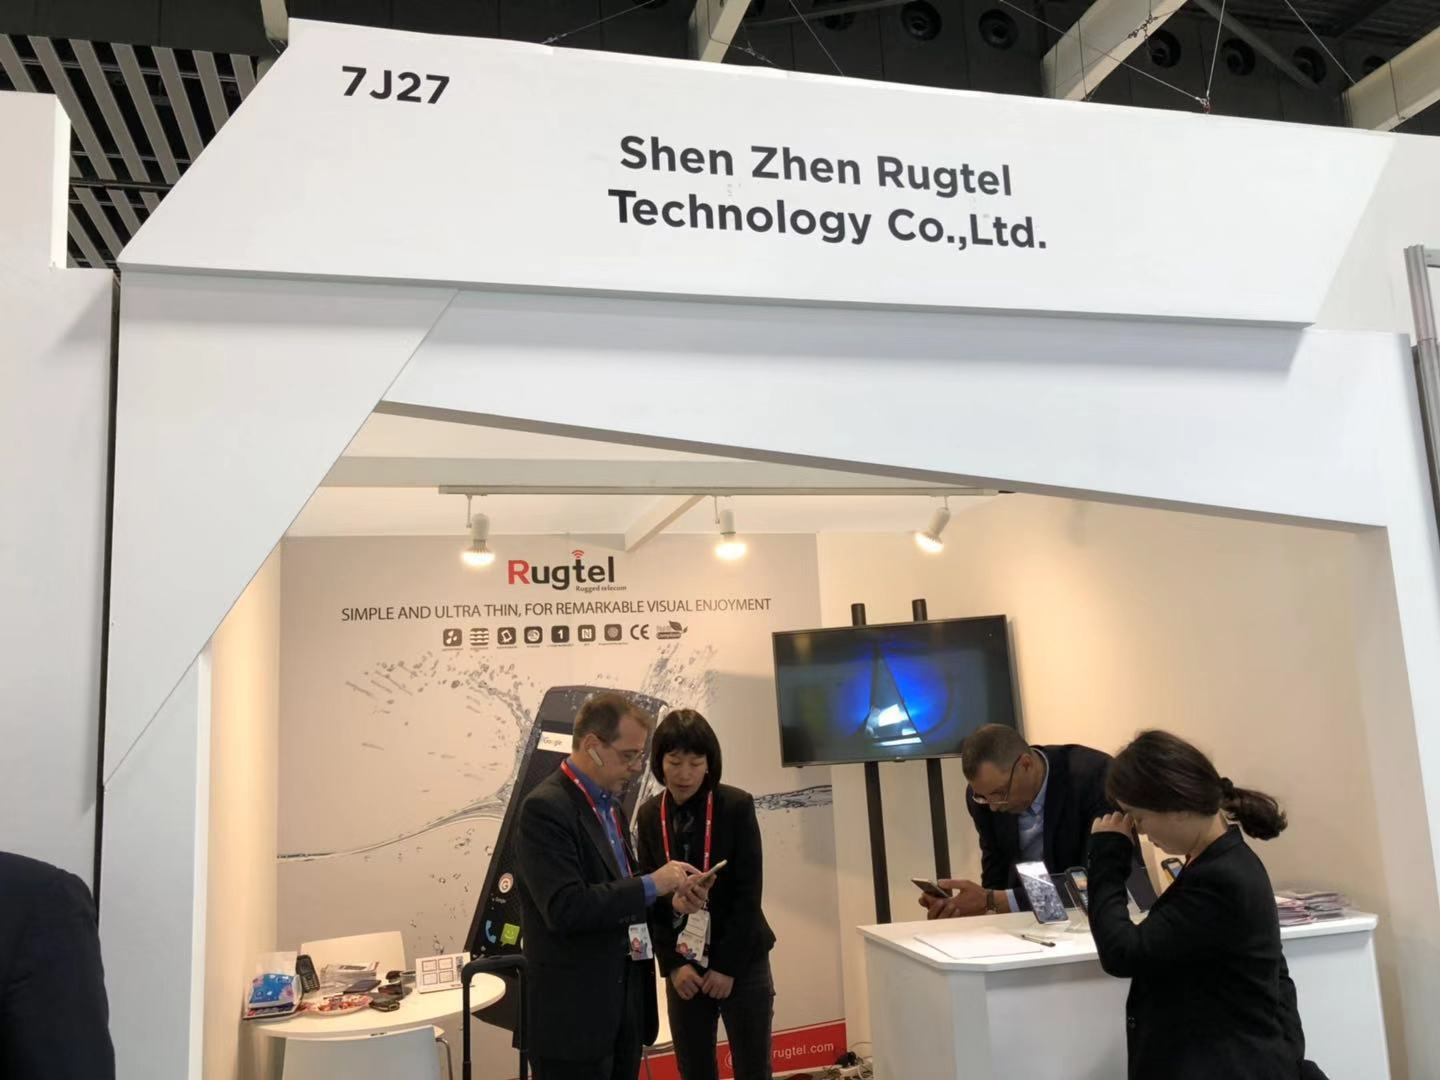 Rugtel attend MWC 2018, Booth No: 7J27